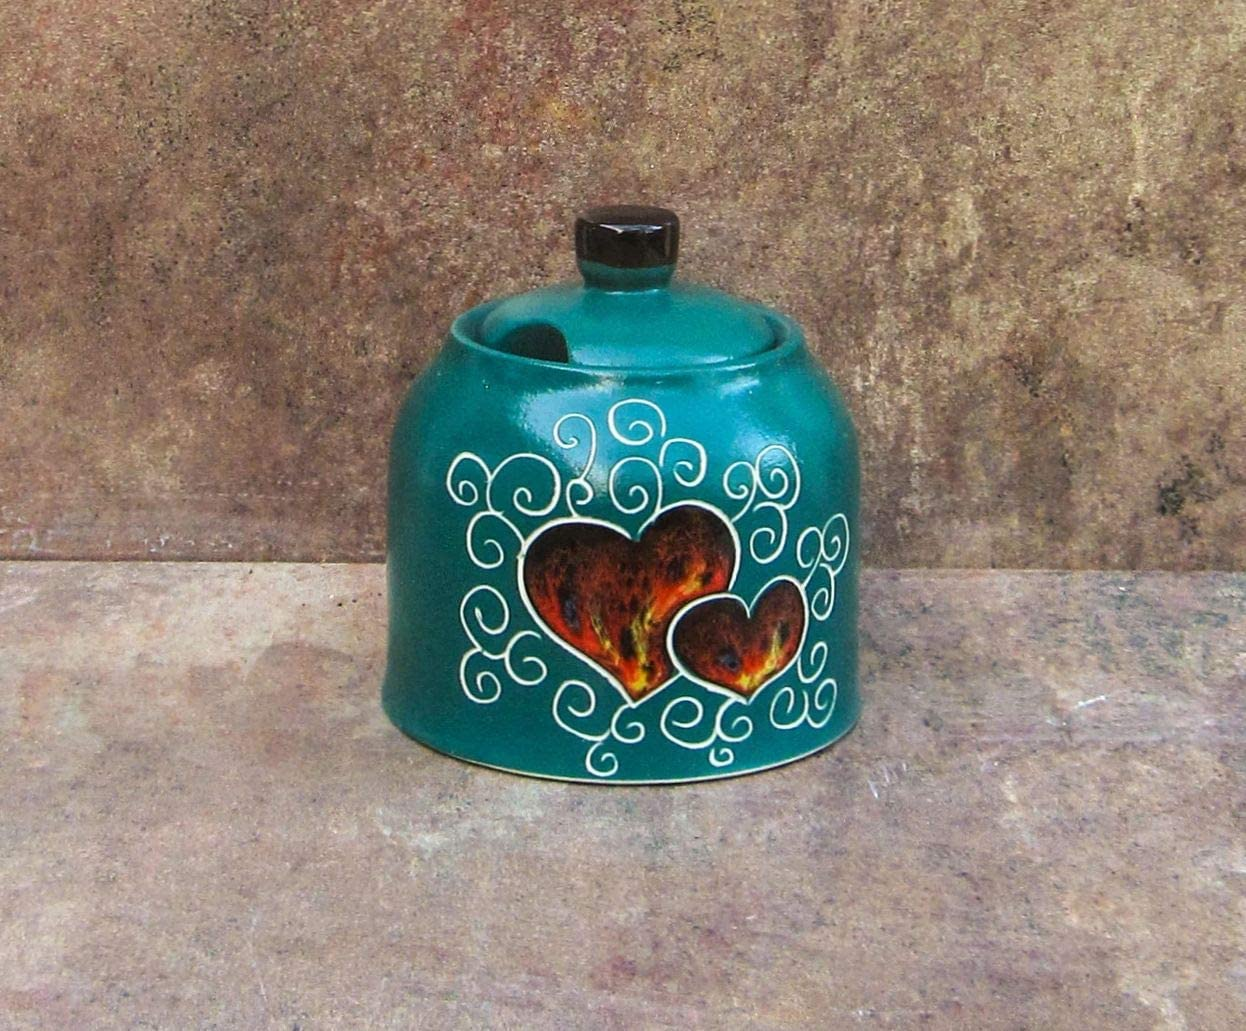 DAOSTOR Green Heart Sugar Bowl 10 Gift Max 68% OFF sold out Â«Gre oz. 300 Idea ml